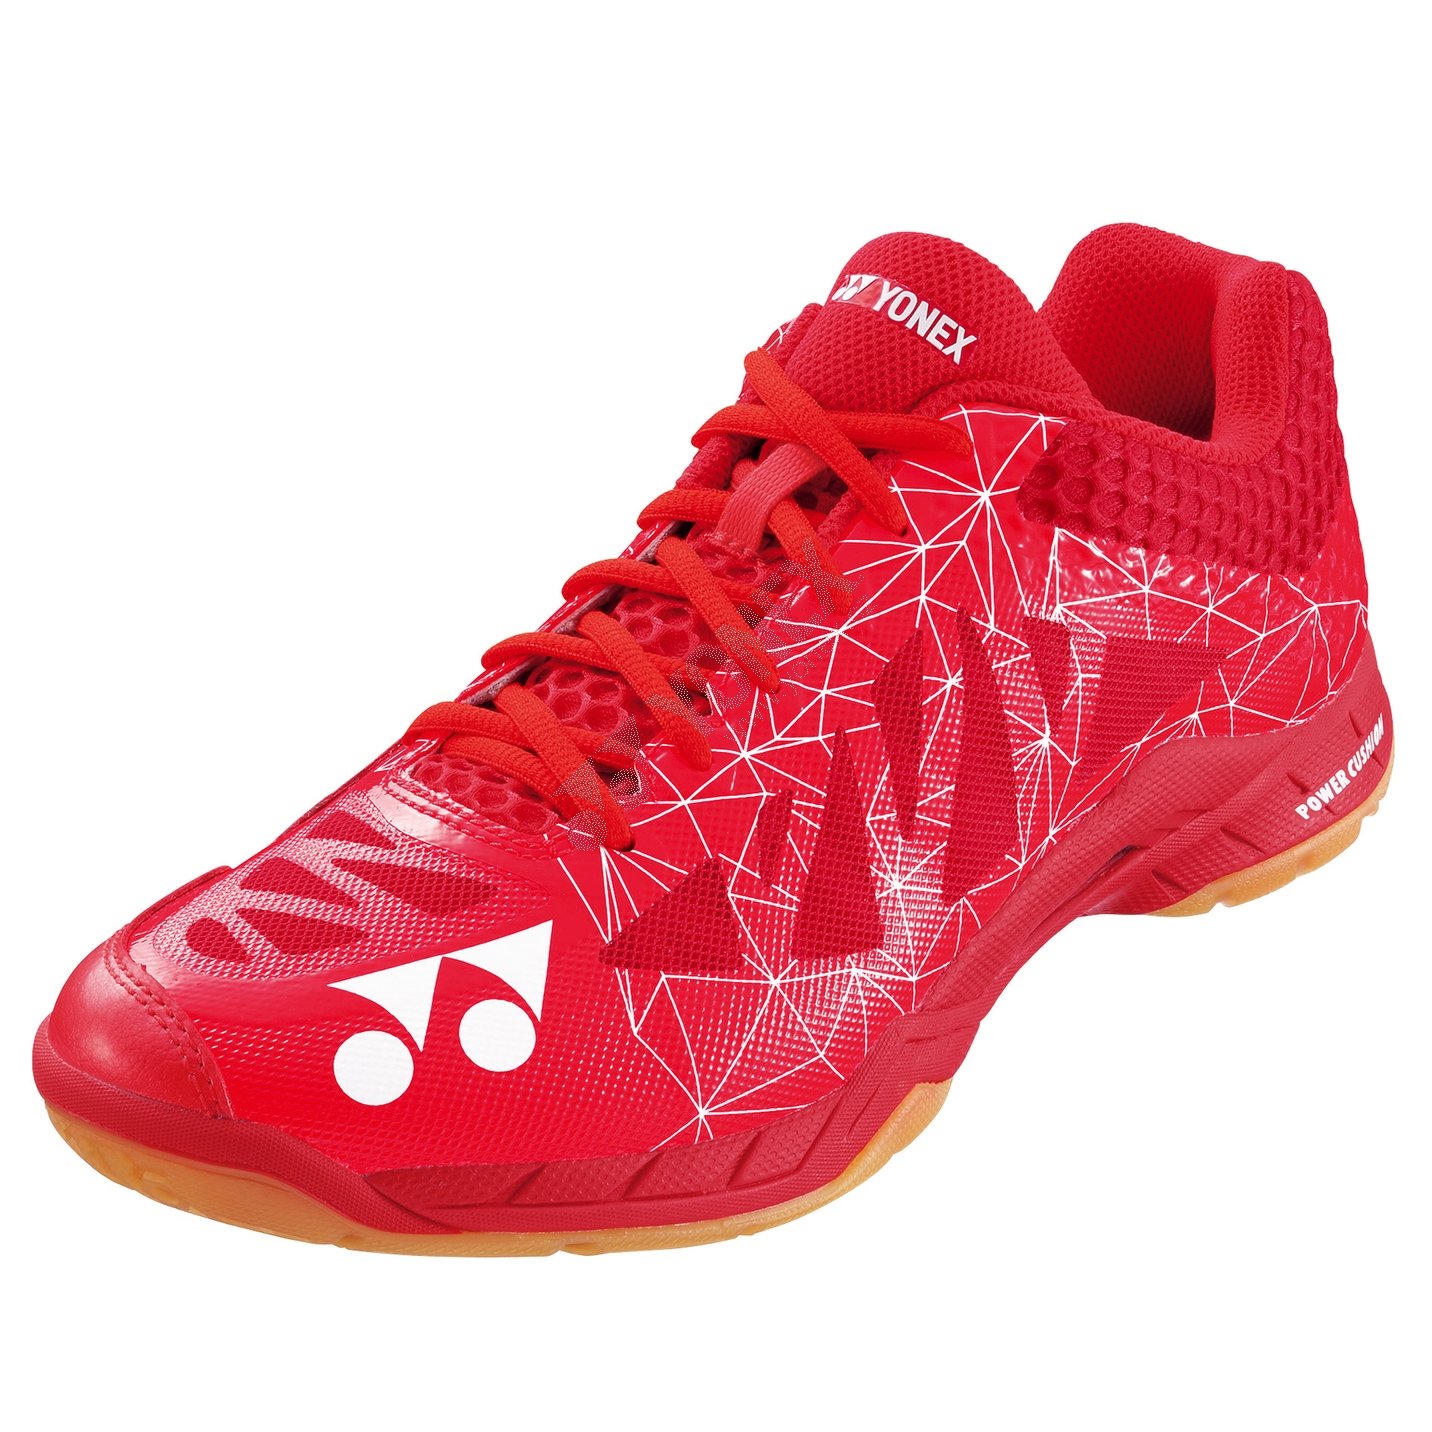 7ebf4095529 Yonex Power Cushion Aerus 2 MX Red